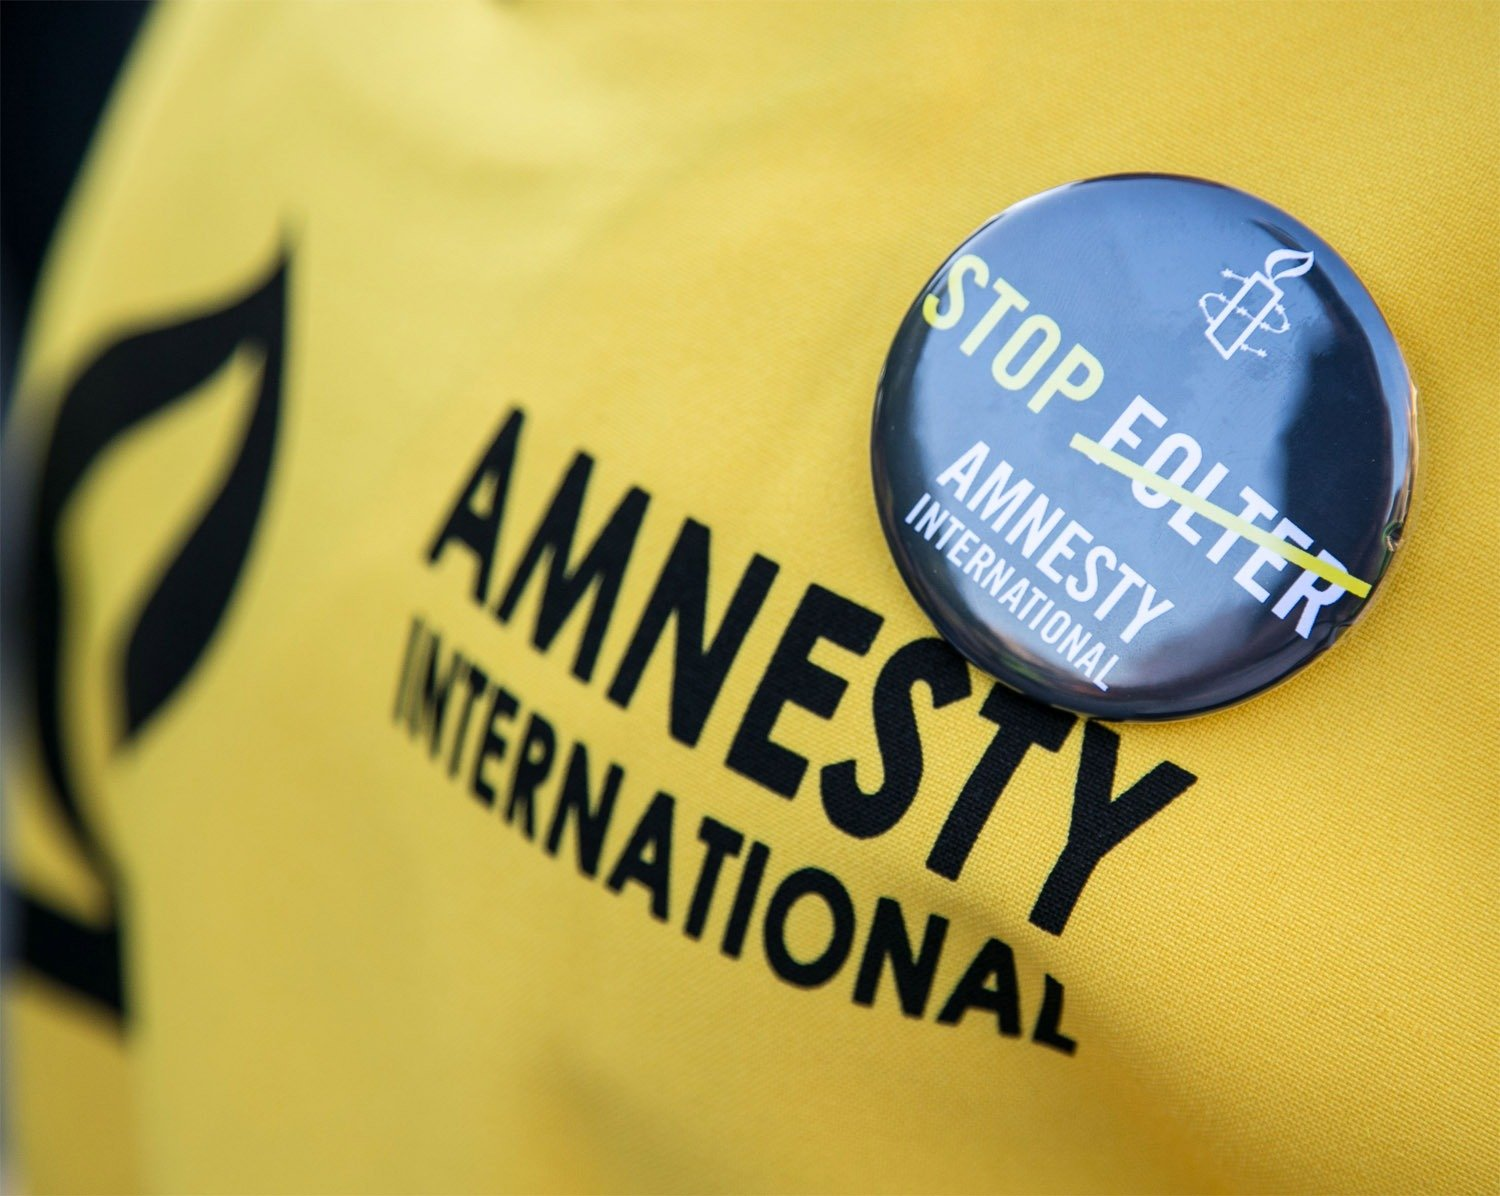 NGO Amnesty International